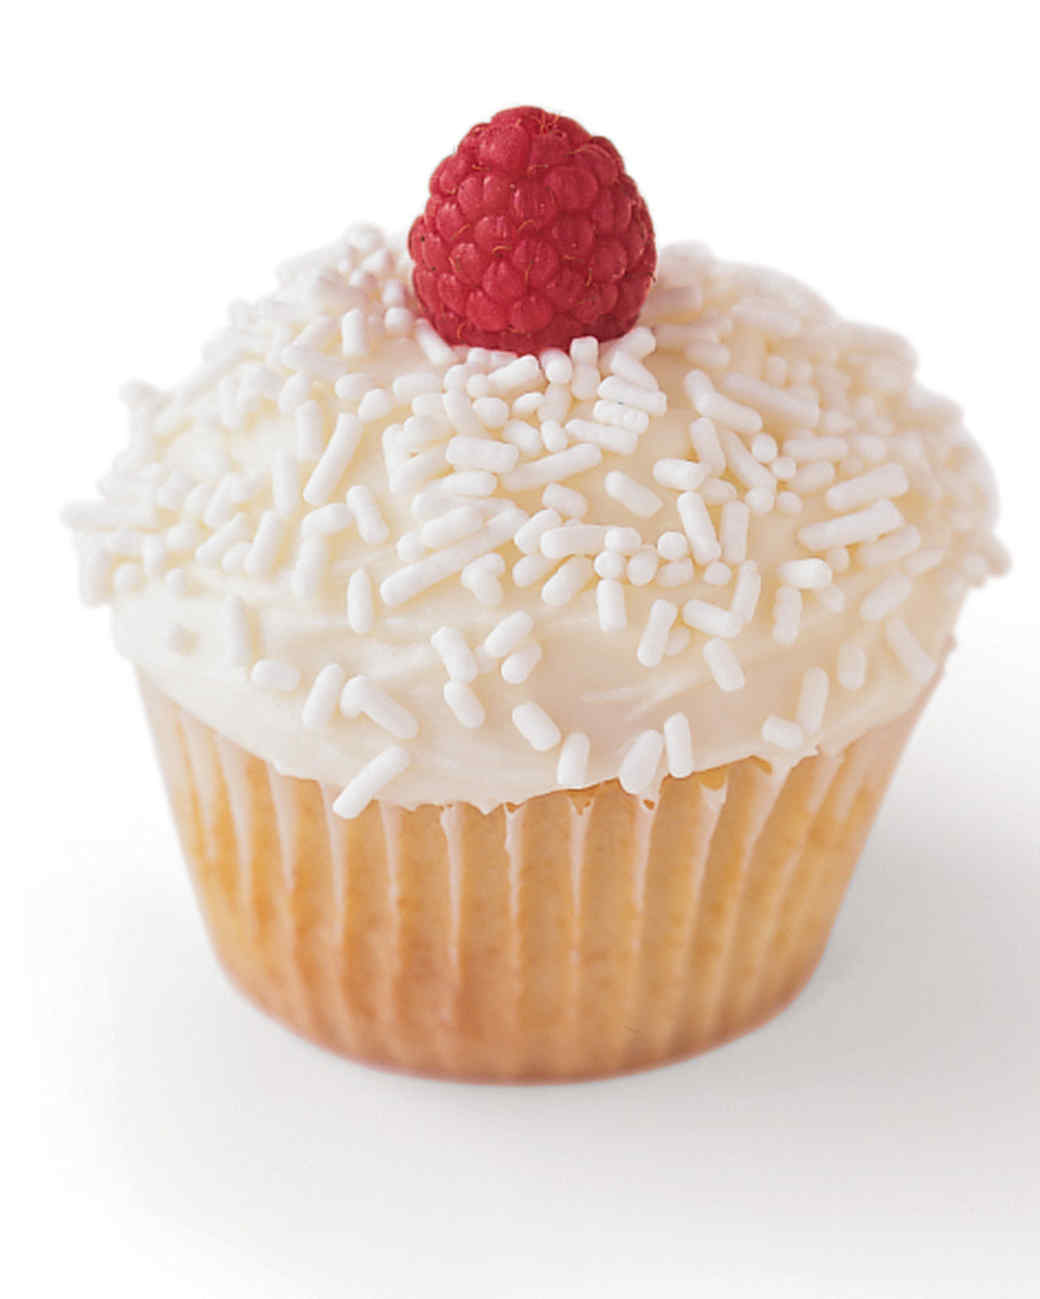 "Parade"" Cupcakes Recipe 